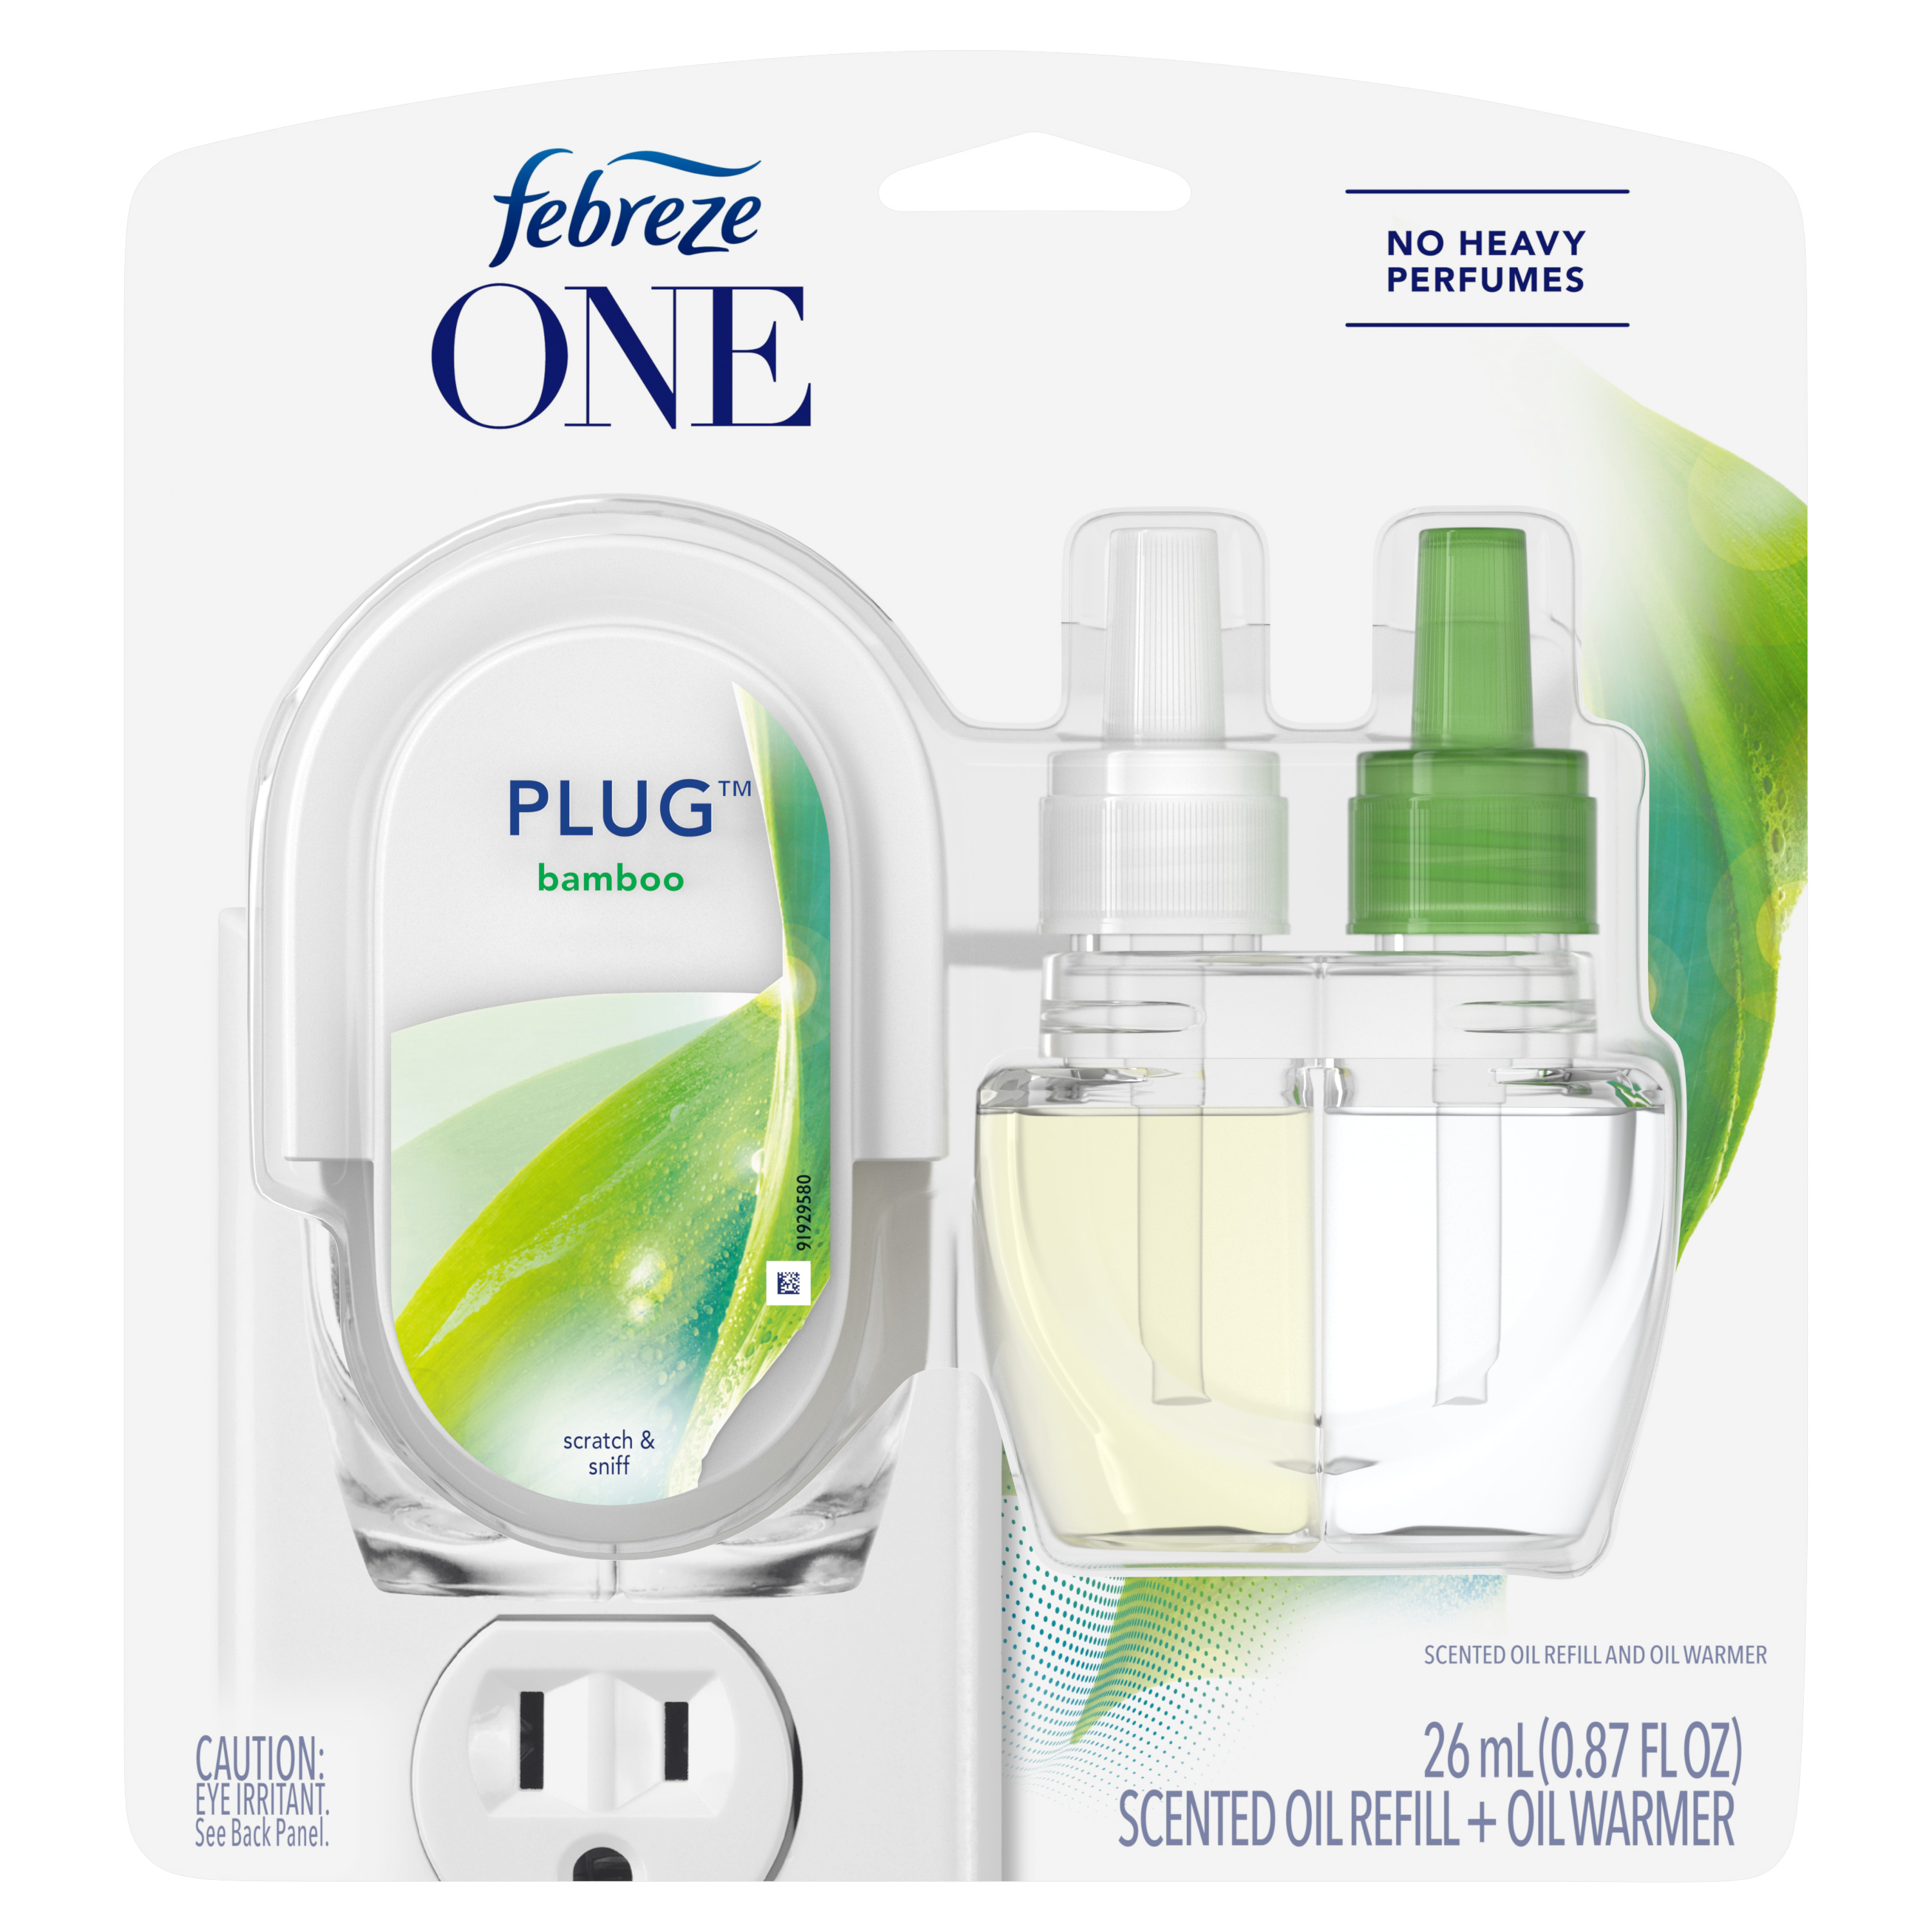 Febreze One Plug Scented Oil Warmer + Bamboo Scented Oil Refill